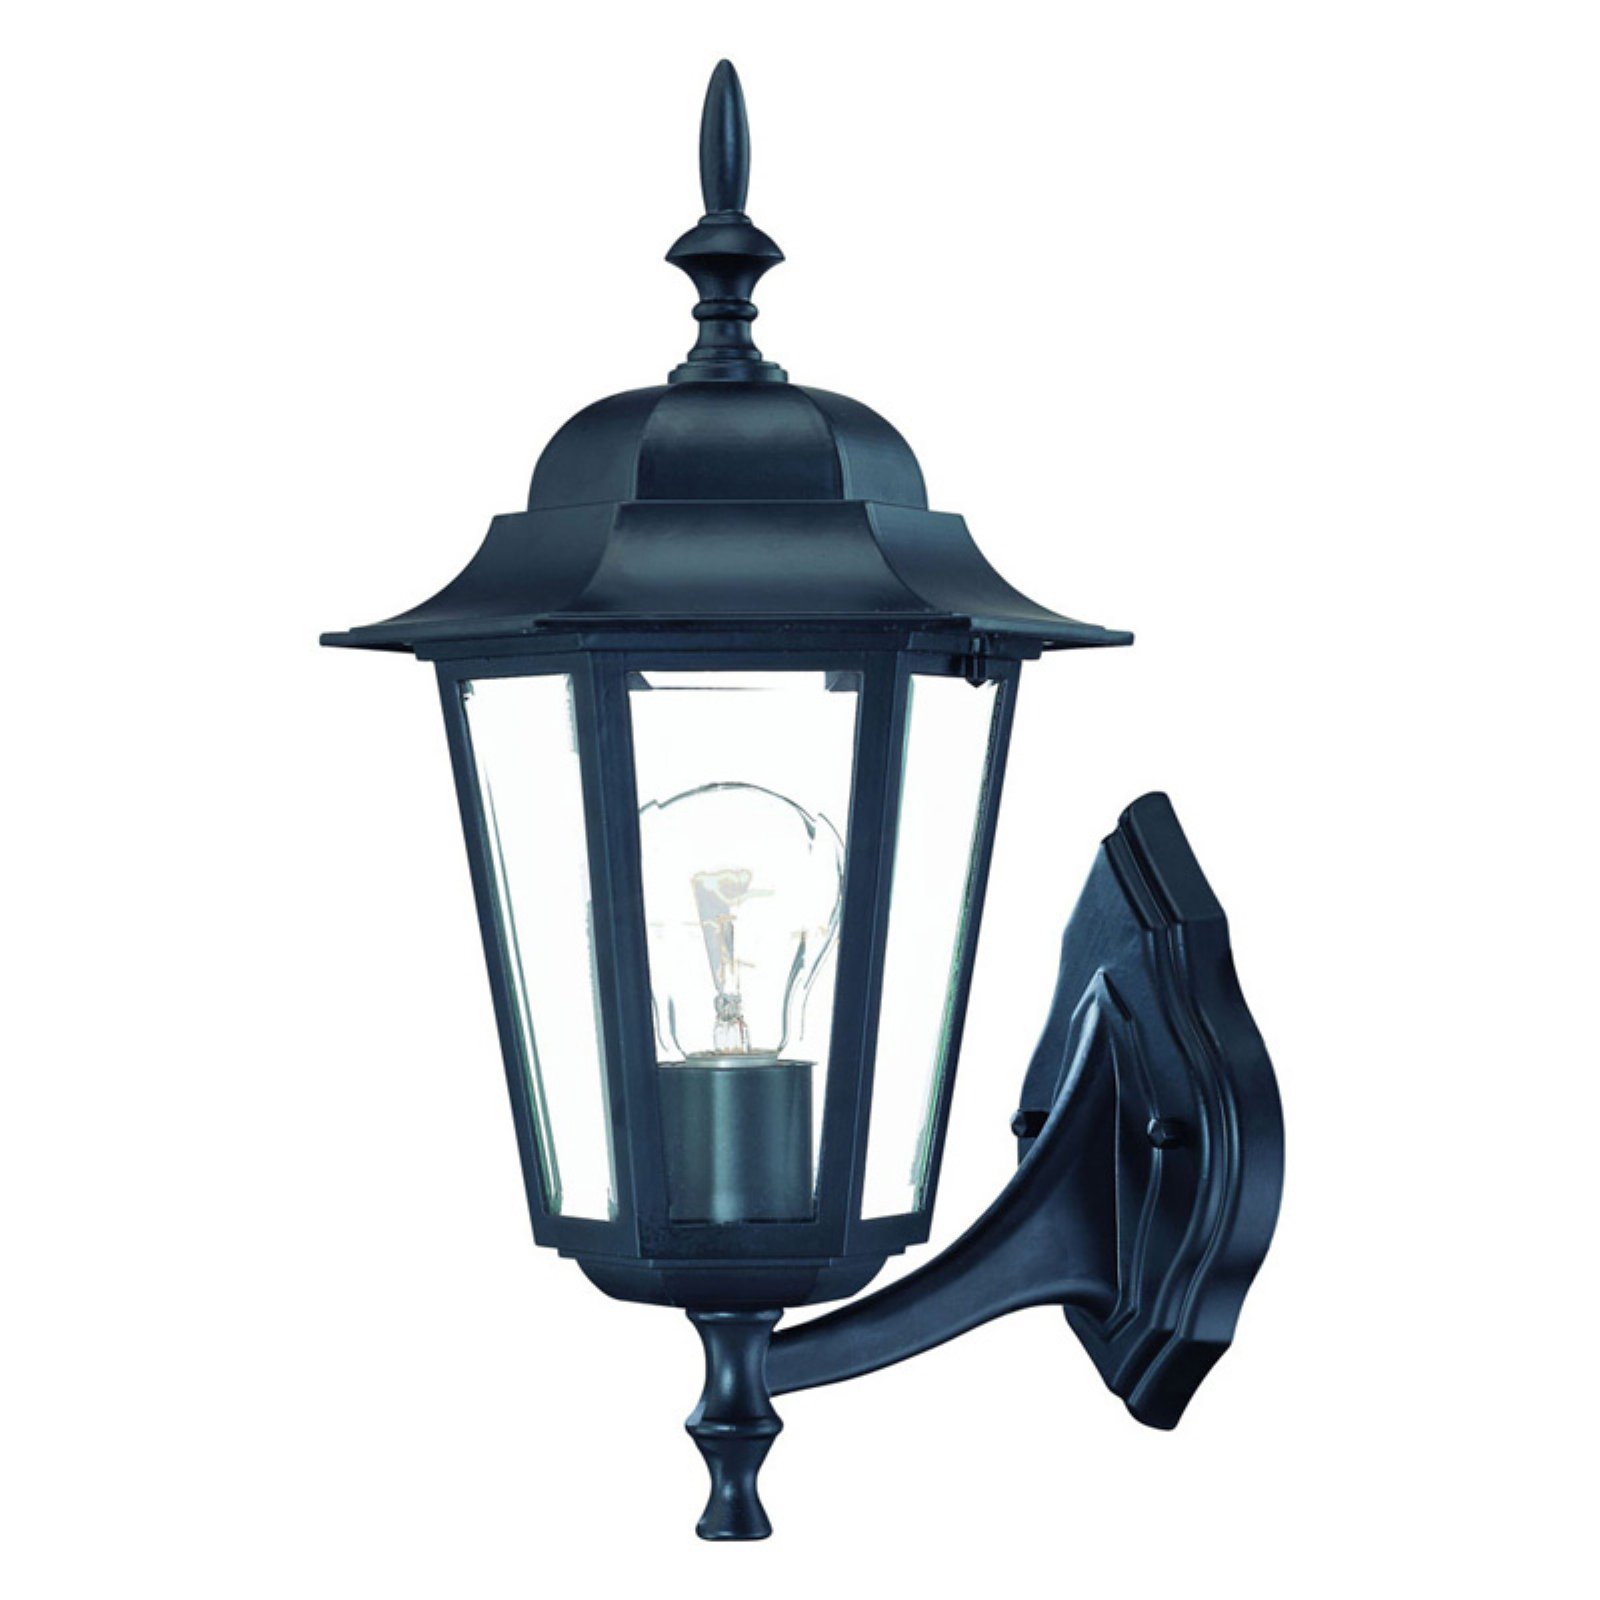 Acclaim Lighting Camelot 9 in. Outdoor Wall Mount Light Fixture